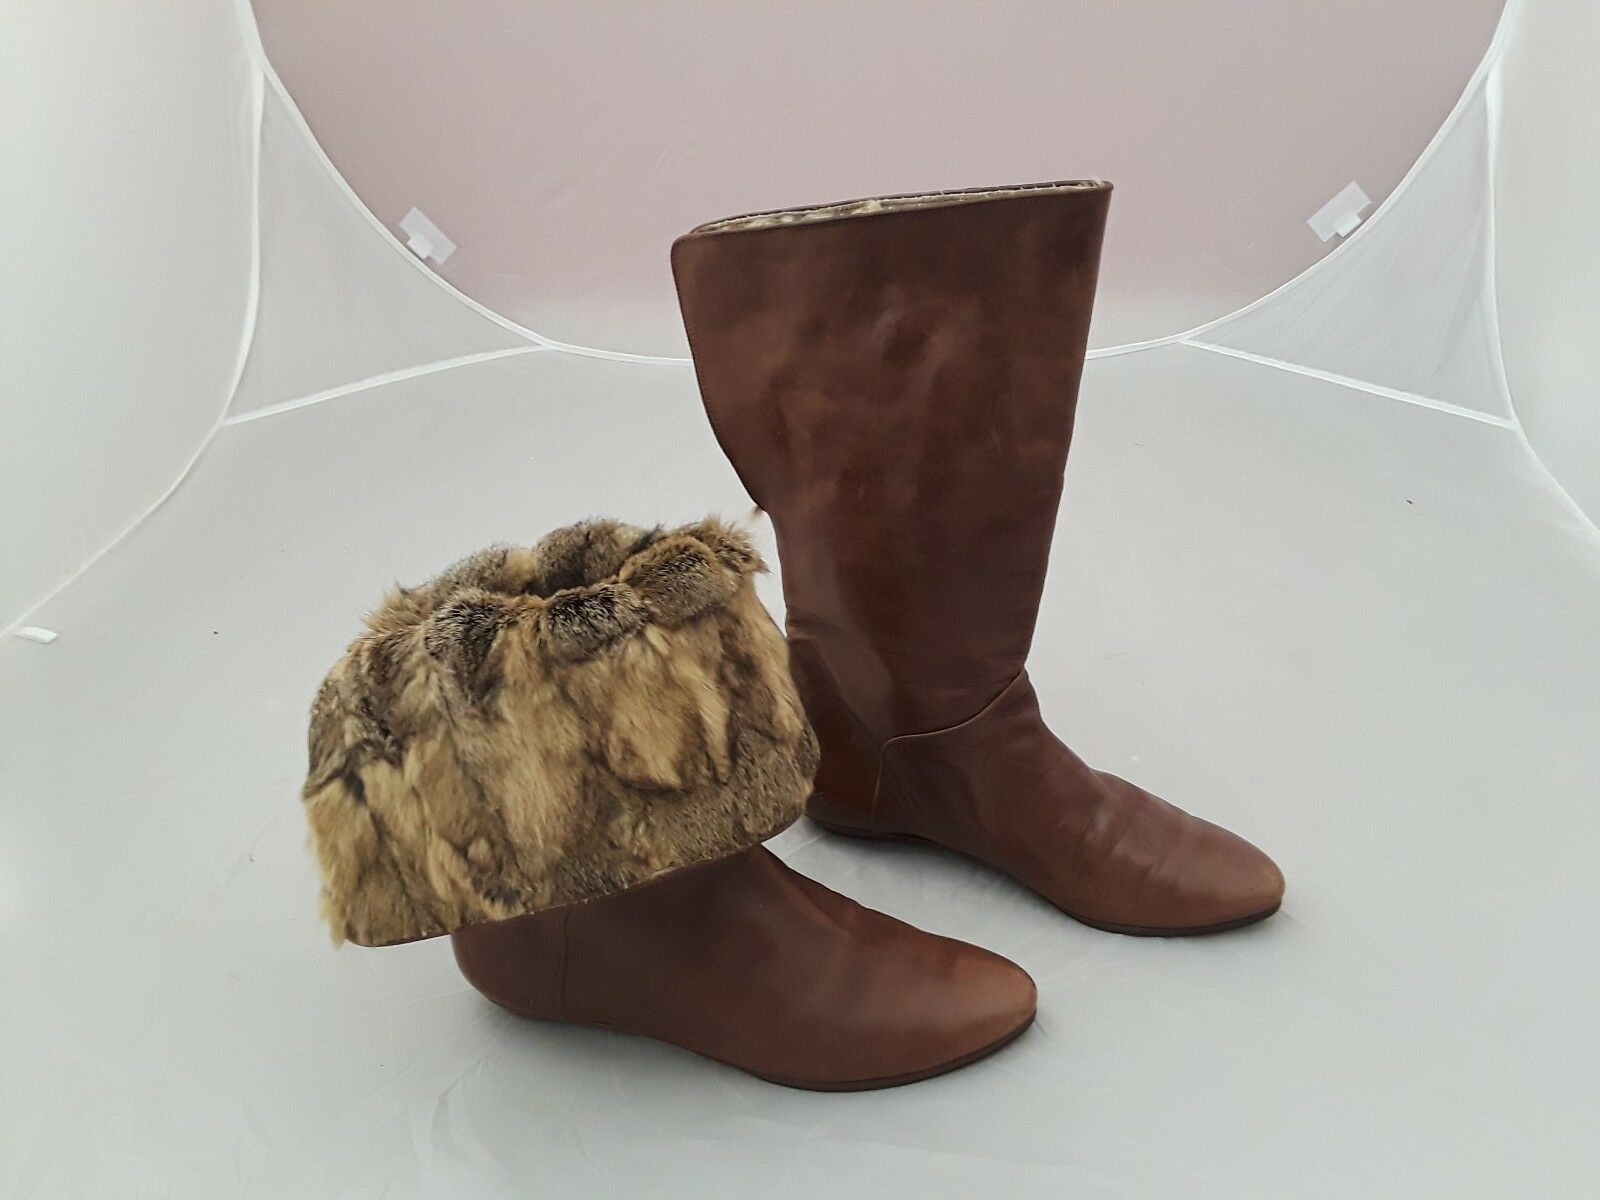 Vtg EL VAQUERO Brown Leather Real Fur Multi-Way Look Boots Sz 38 (US 7.5)